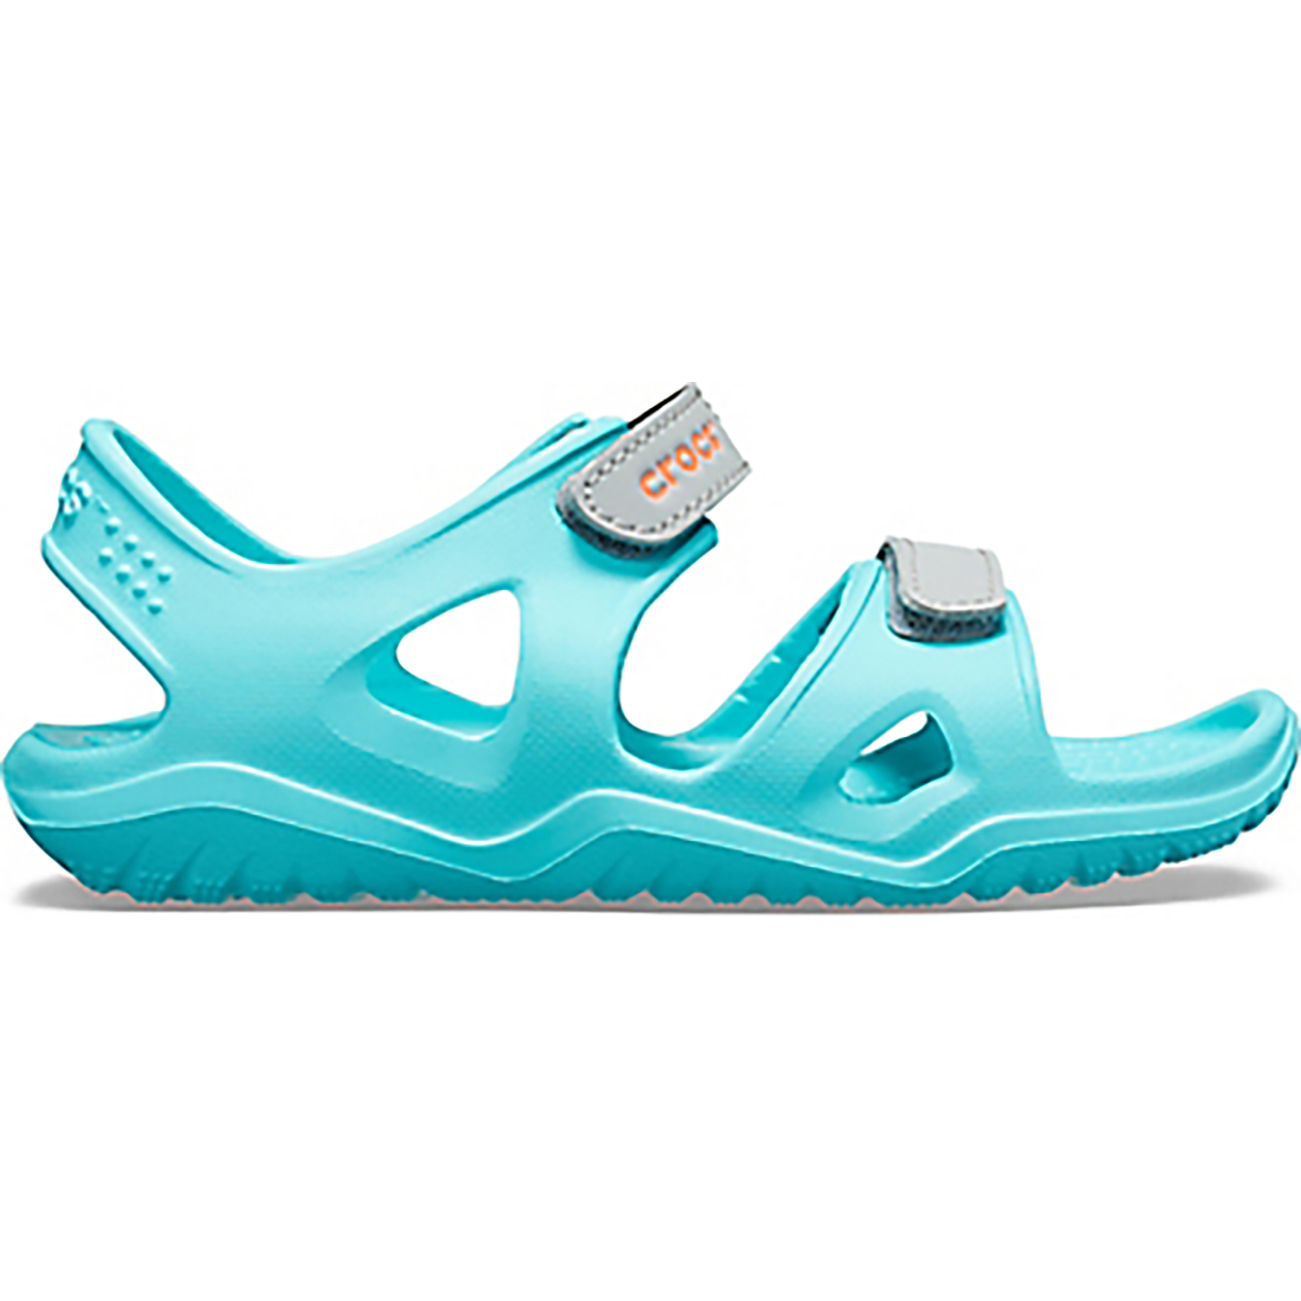 Unisex Kids Crocs Swiftwater River Sandal Pool Sea Holiday Summer Shoe All Sizes